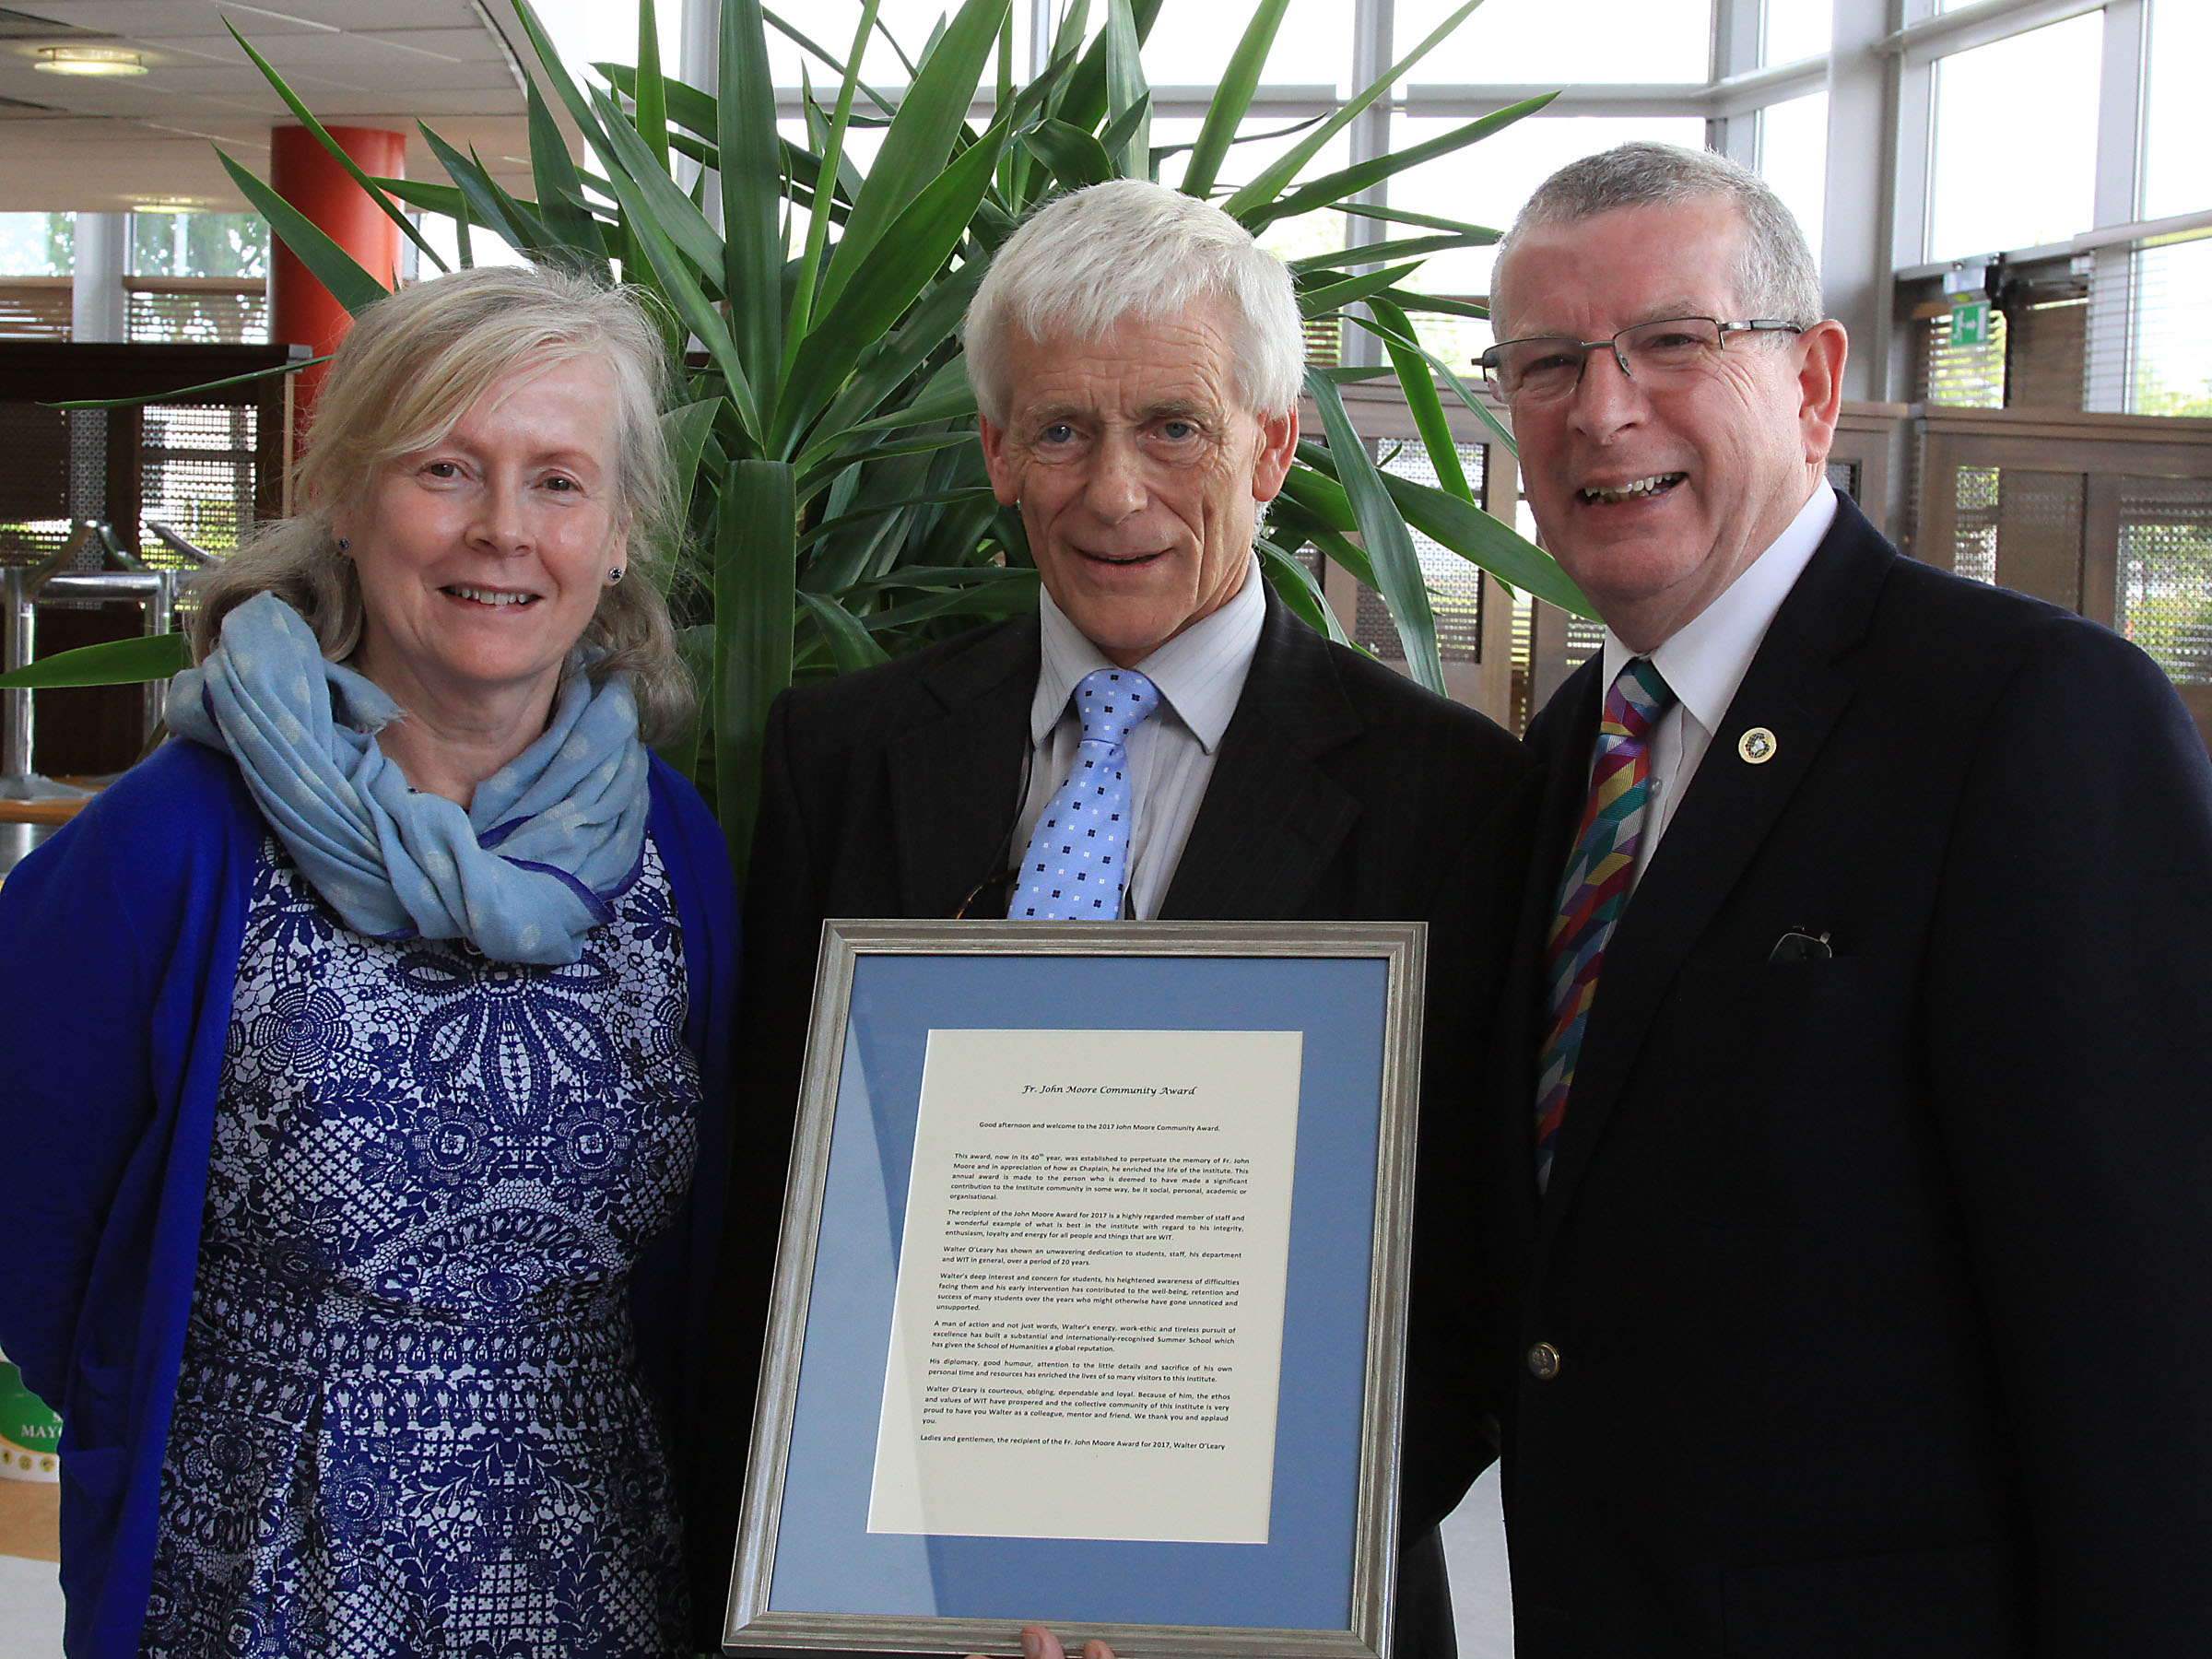 Pictured from left at the 2017 John Moore Award ceremony are Head of the School of Humanities, Dr Marian O'Neill, award recipient, Dr Walter O'Leary and Dr Ray Cullen, Head of Department of Languages Tourism Hospitality